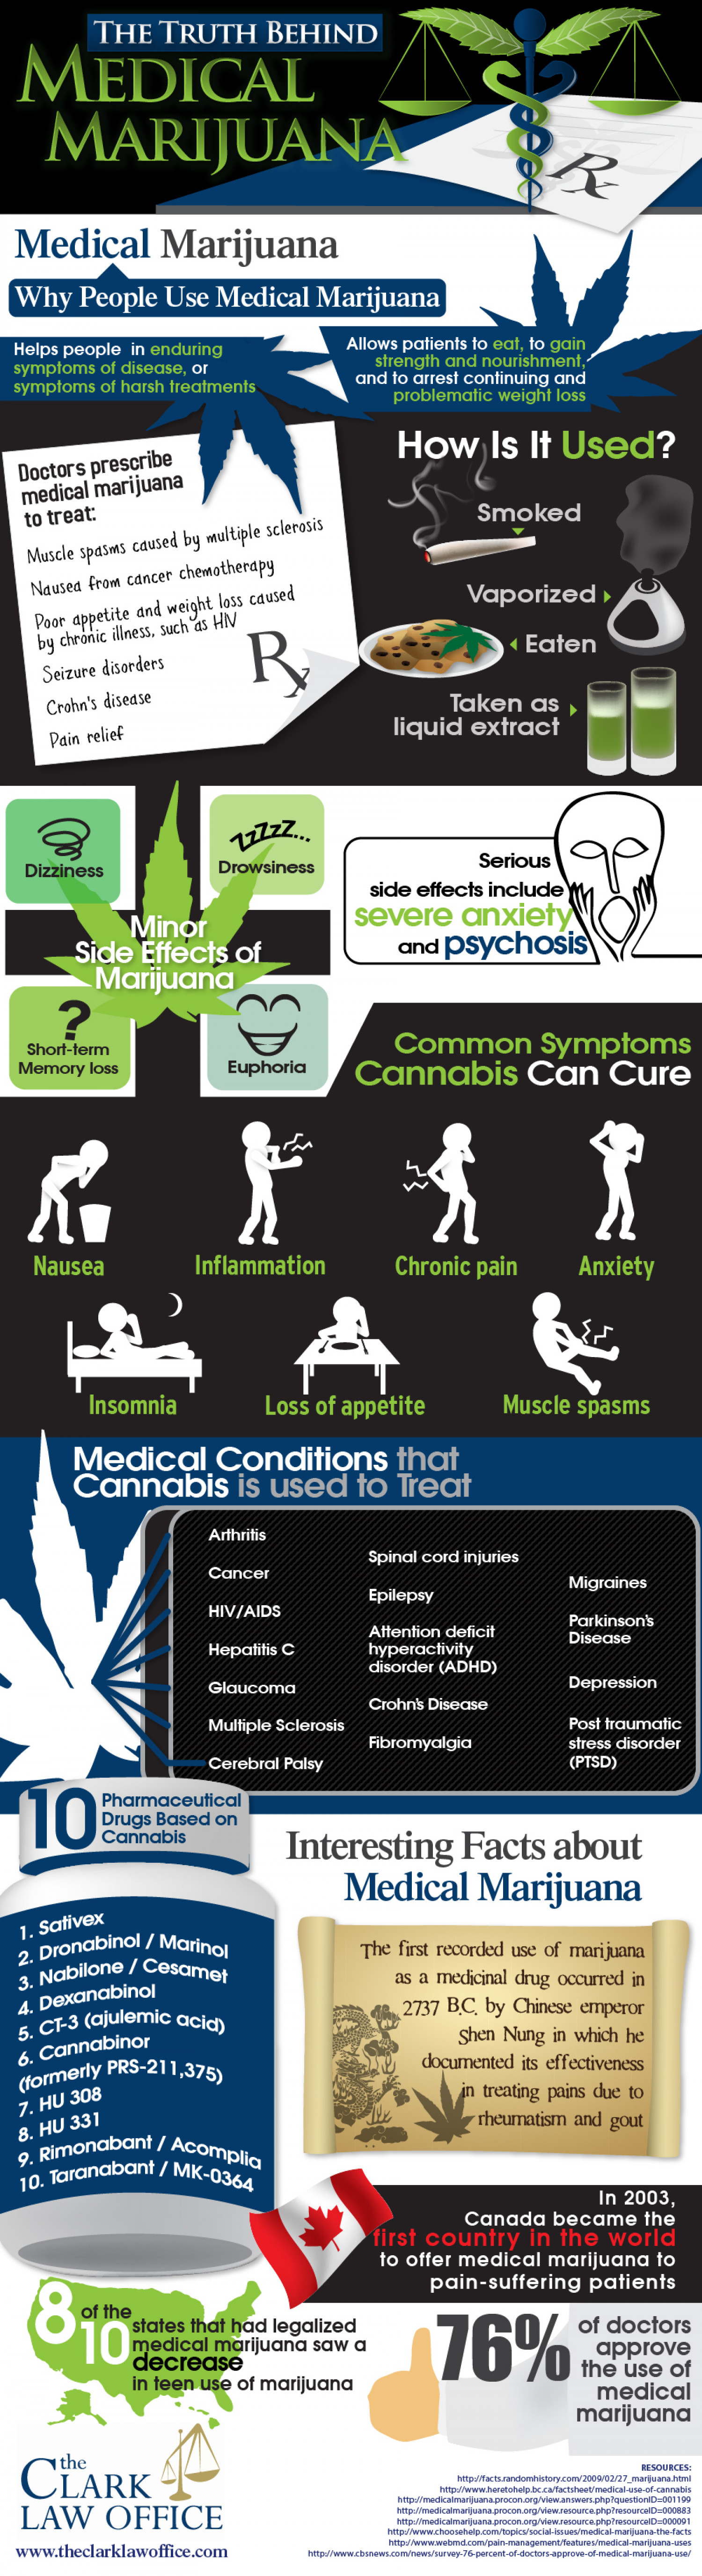 The Truth Behind Medical Marijuana Infographic